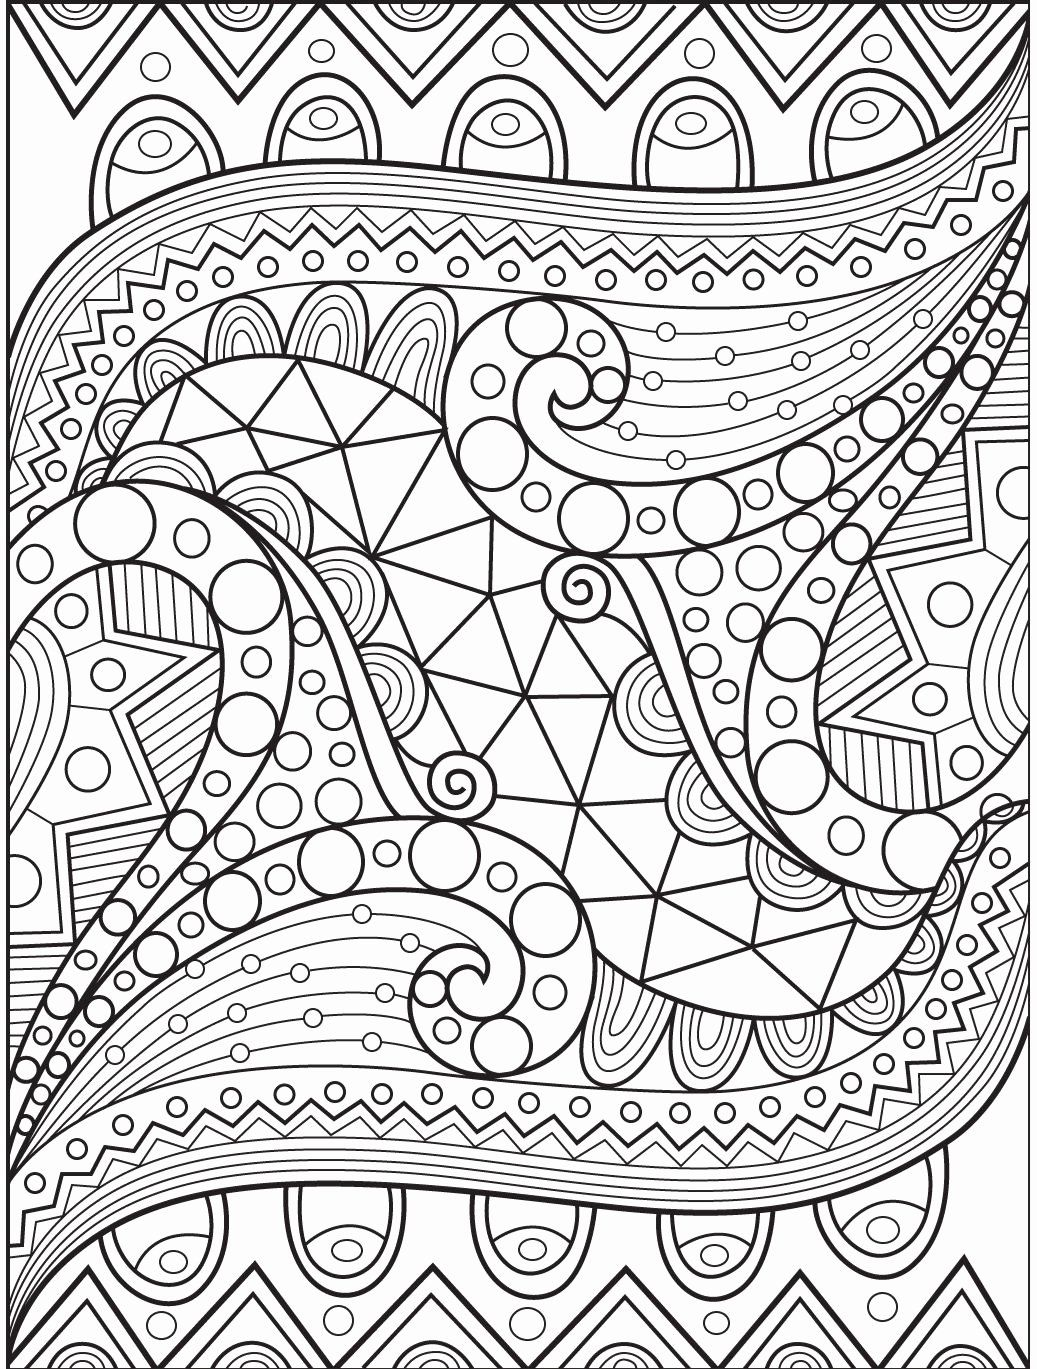 Pin On Coloring Page Ideas For Adult